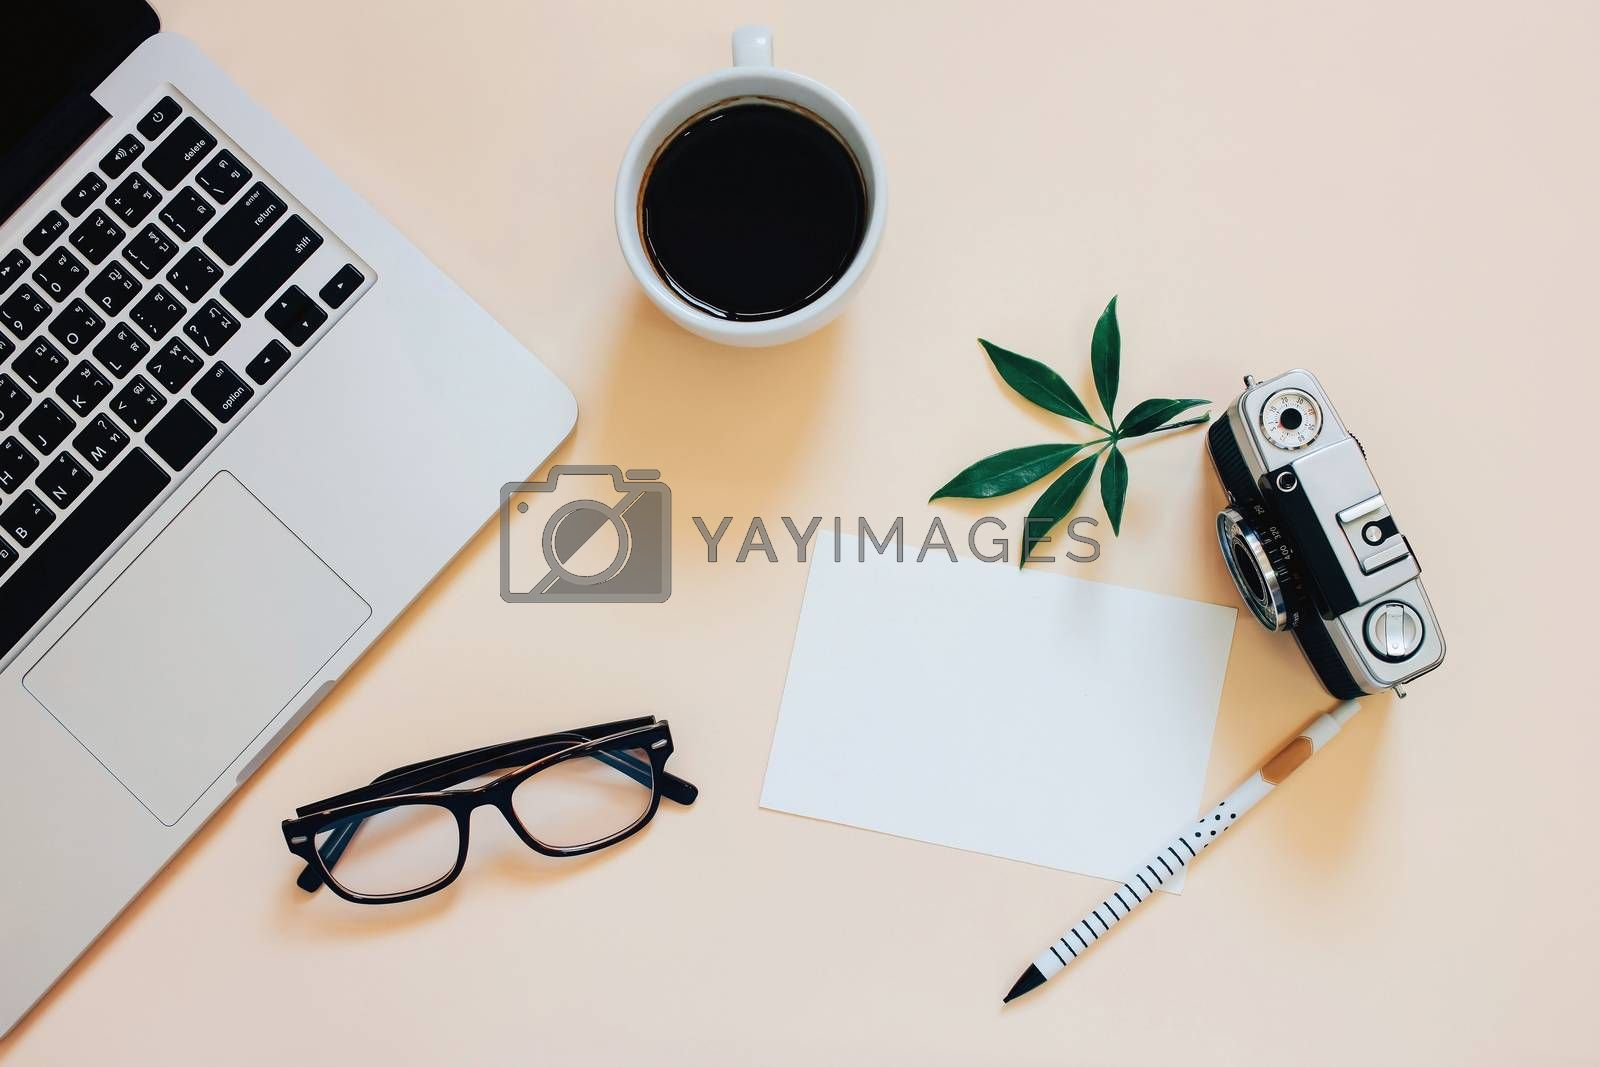 Creative flat lay photo of workspace desk with laptop, coffee, blank paper and film camera with copy space background, minimal styled